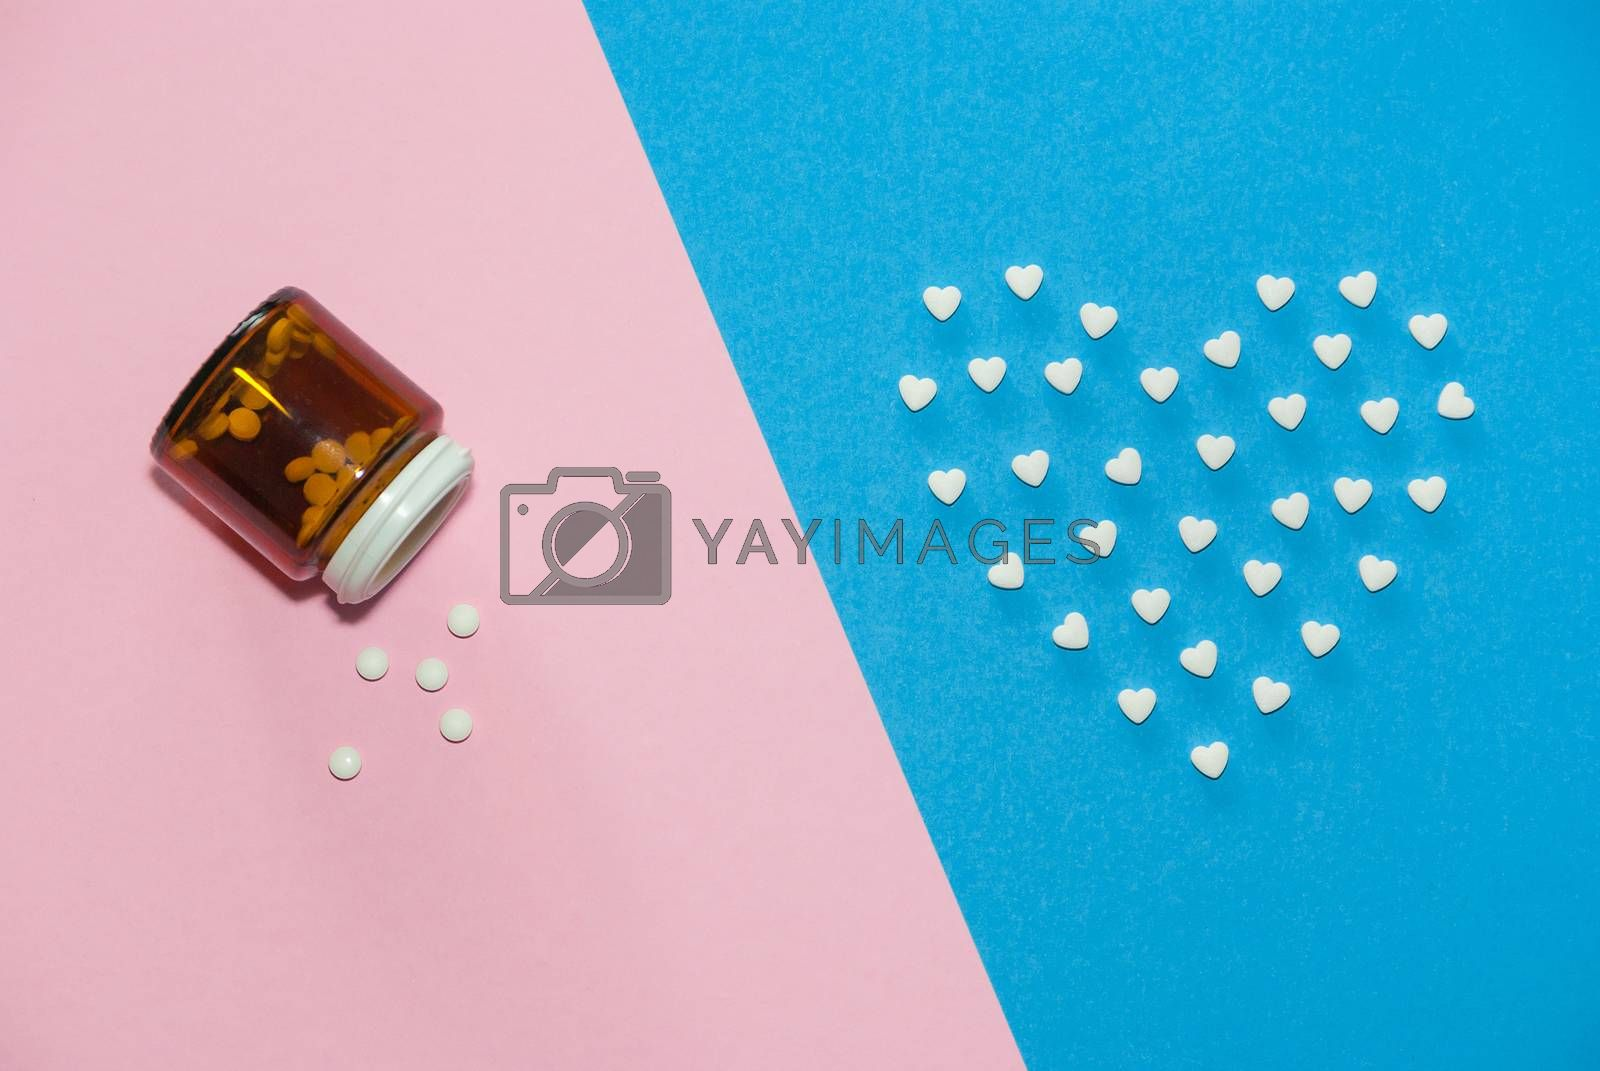 The figures of pills on the background by AEK